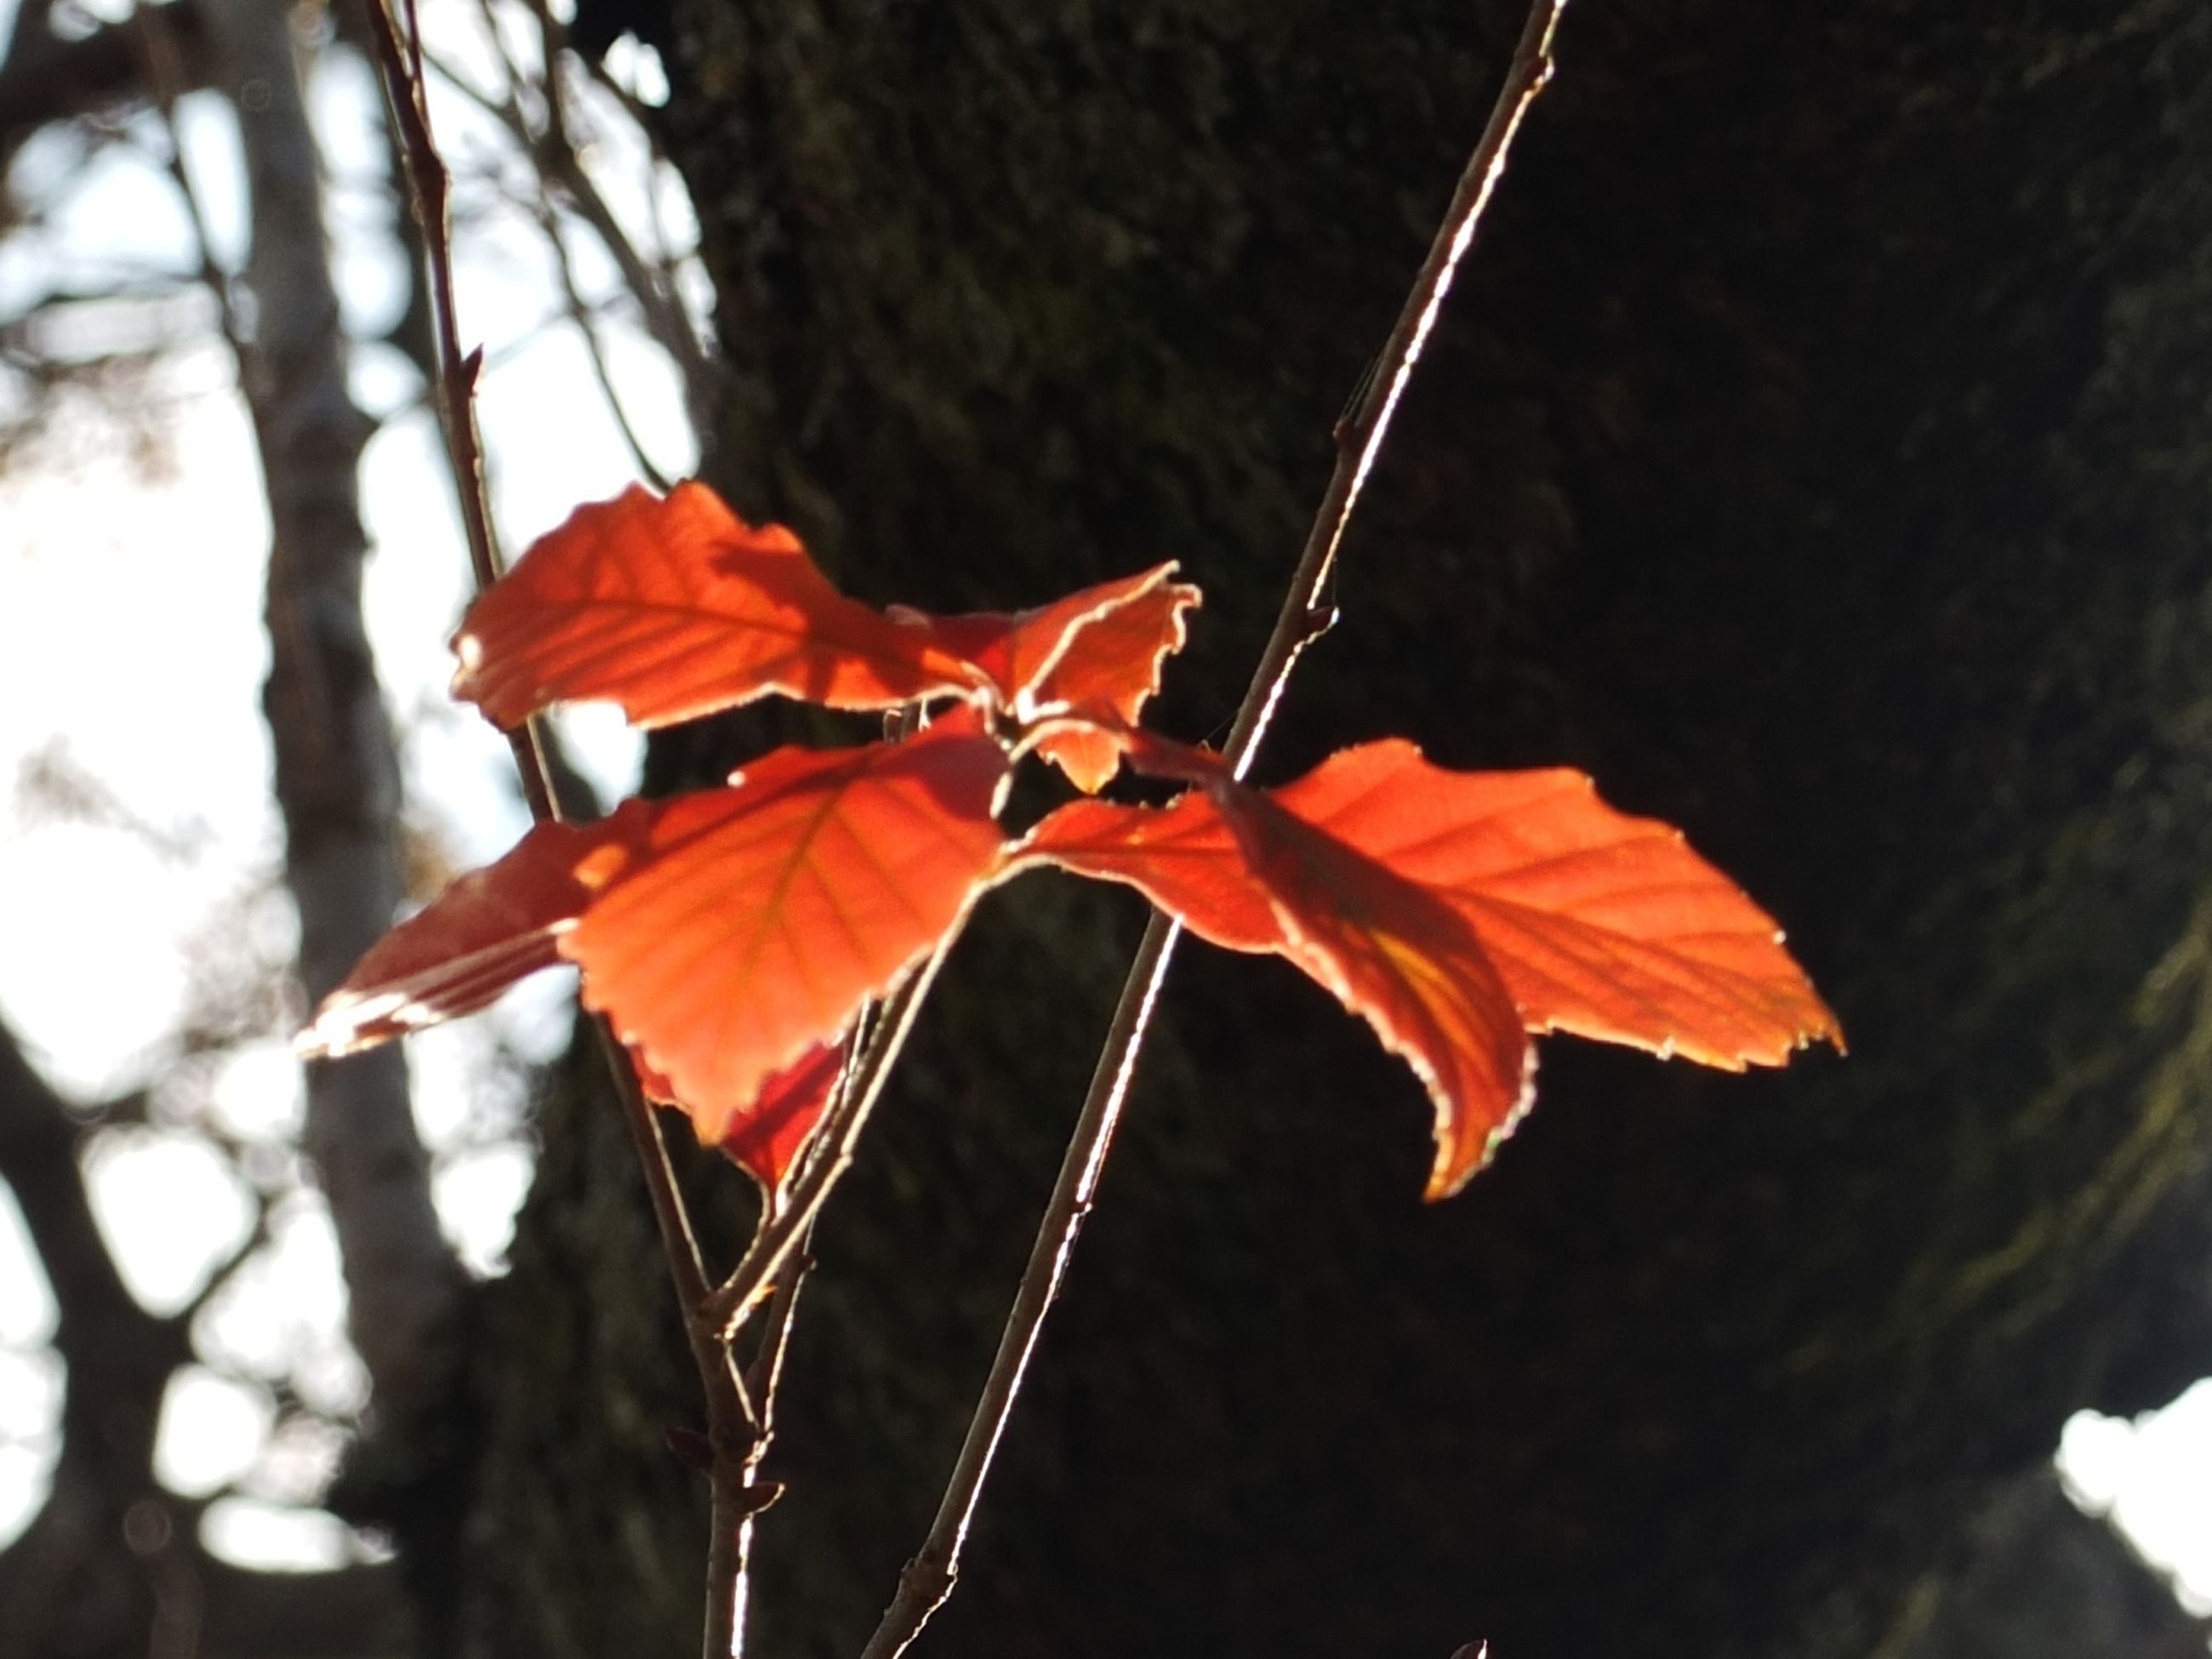 leaf, autumn, leaf vein, change, focus on foreground, maple leaf, close-up, nature, red, orange color, tree, leaves, branch, low angle view, season, natural pattern, beauty in nature, dry, outdoors, day